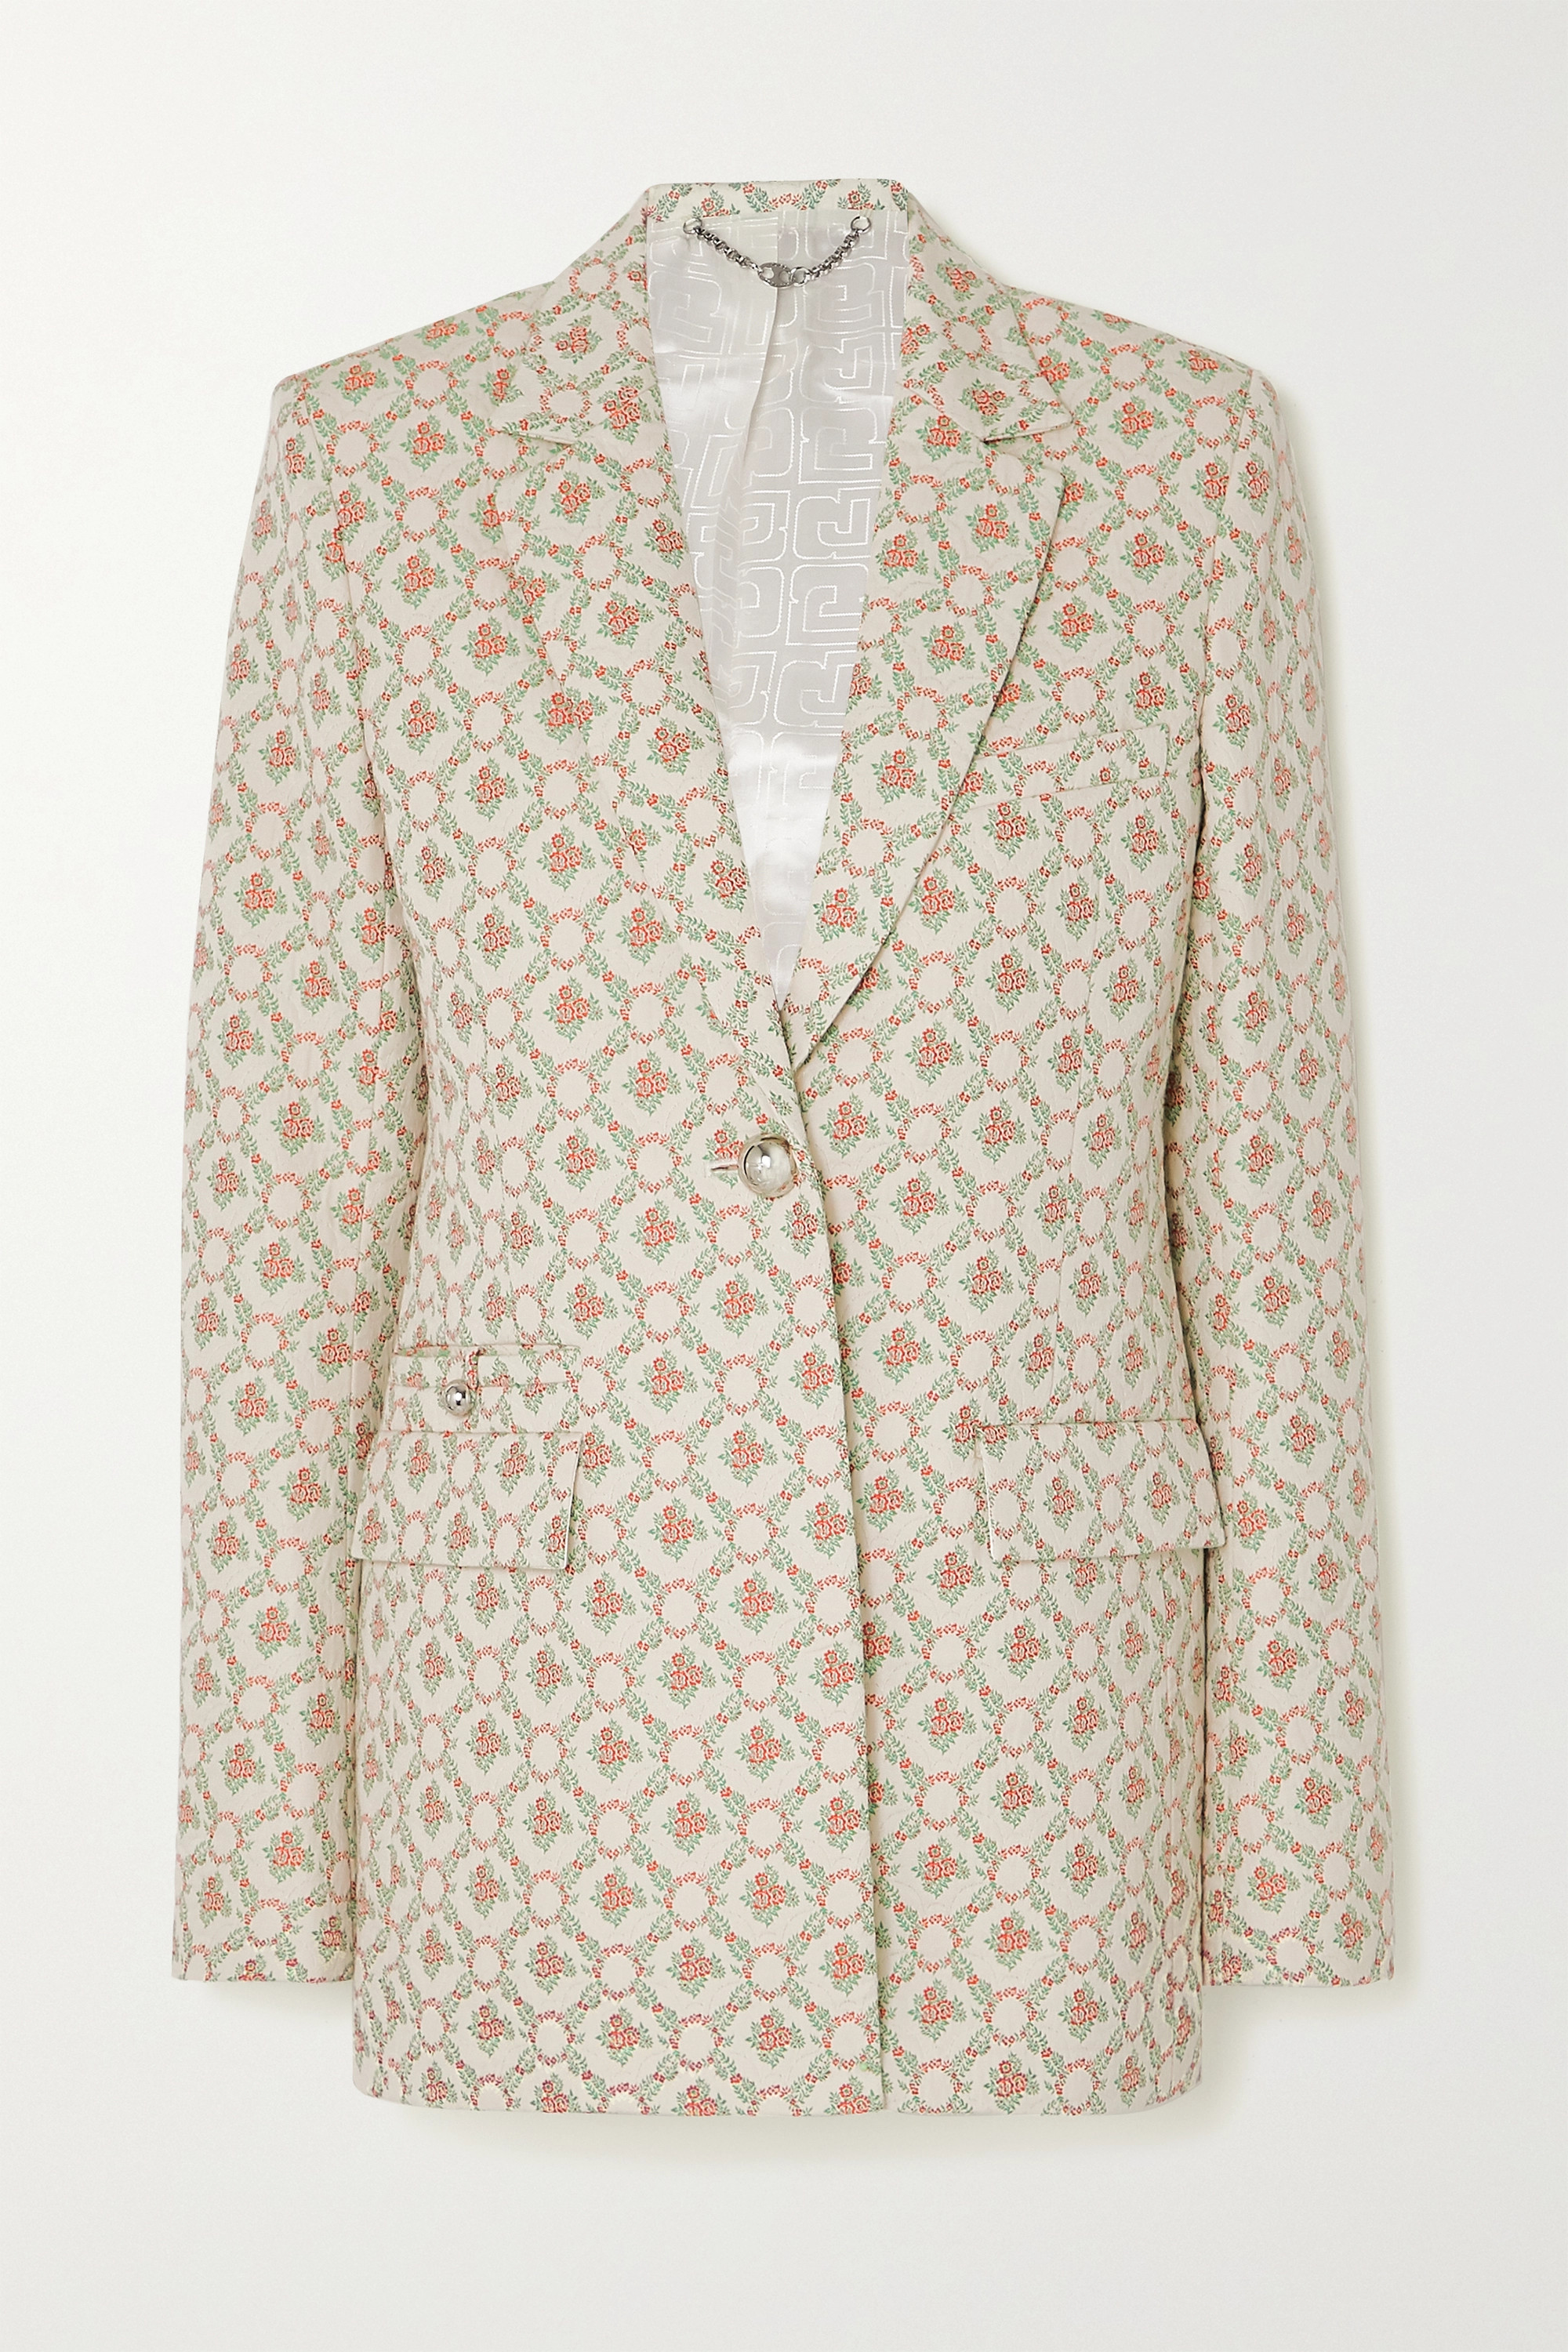 Paco Rabanne Quilted Cotton-blend Floral-jacquard Blazer In Beige